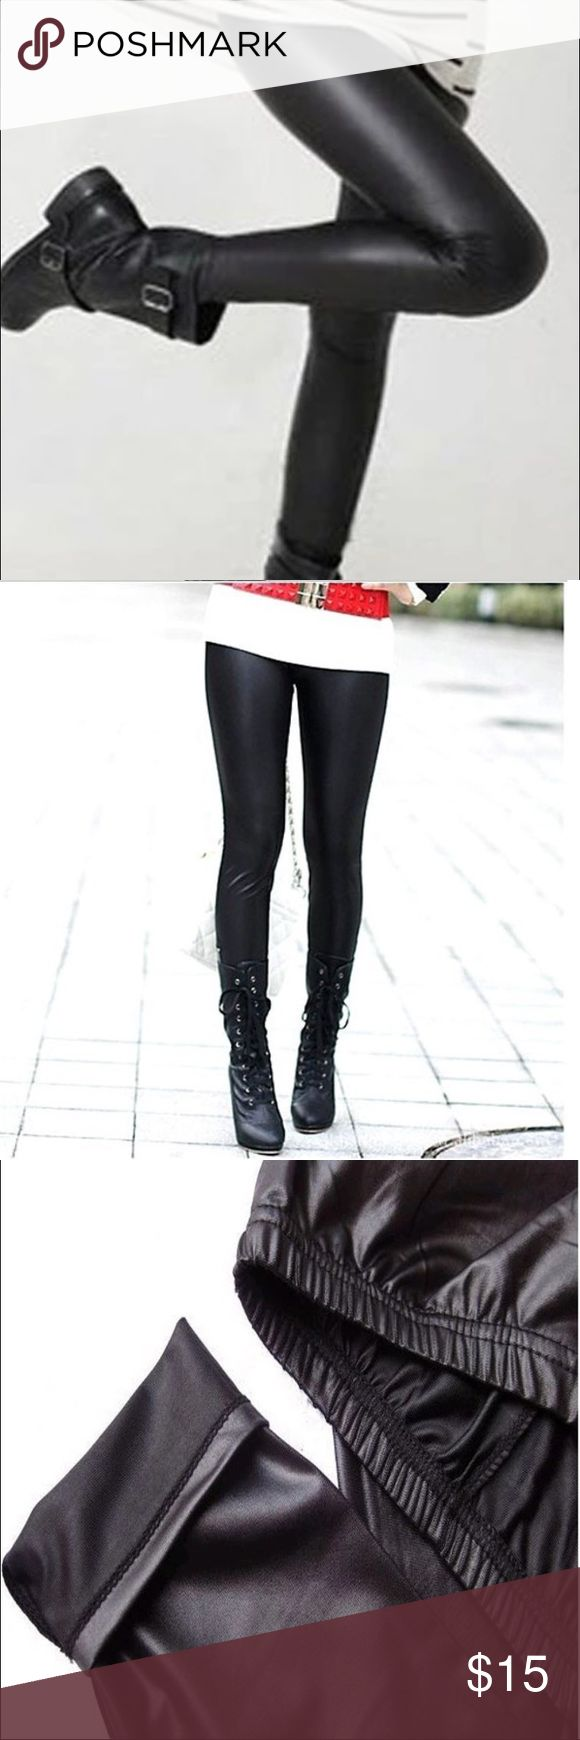 🆕 Sexy Wet Look Faux Leather Leggings Faux Leather Leggings  Wet look faux leather leggings  Has elastic waist Has some stretch  Lined with cotton inside leggings New in package  ✨ One Size: But would fit between a                        XS to M.  Please pay attention to sizes. Boutique Pants Leggings